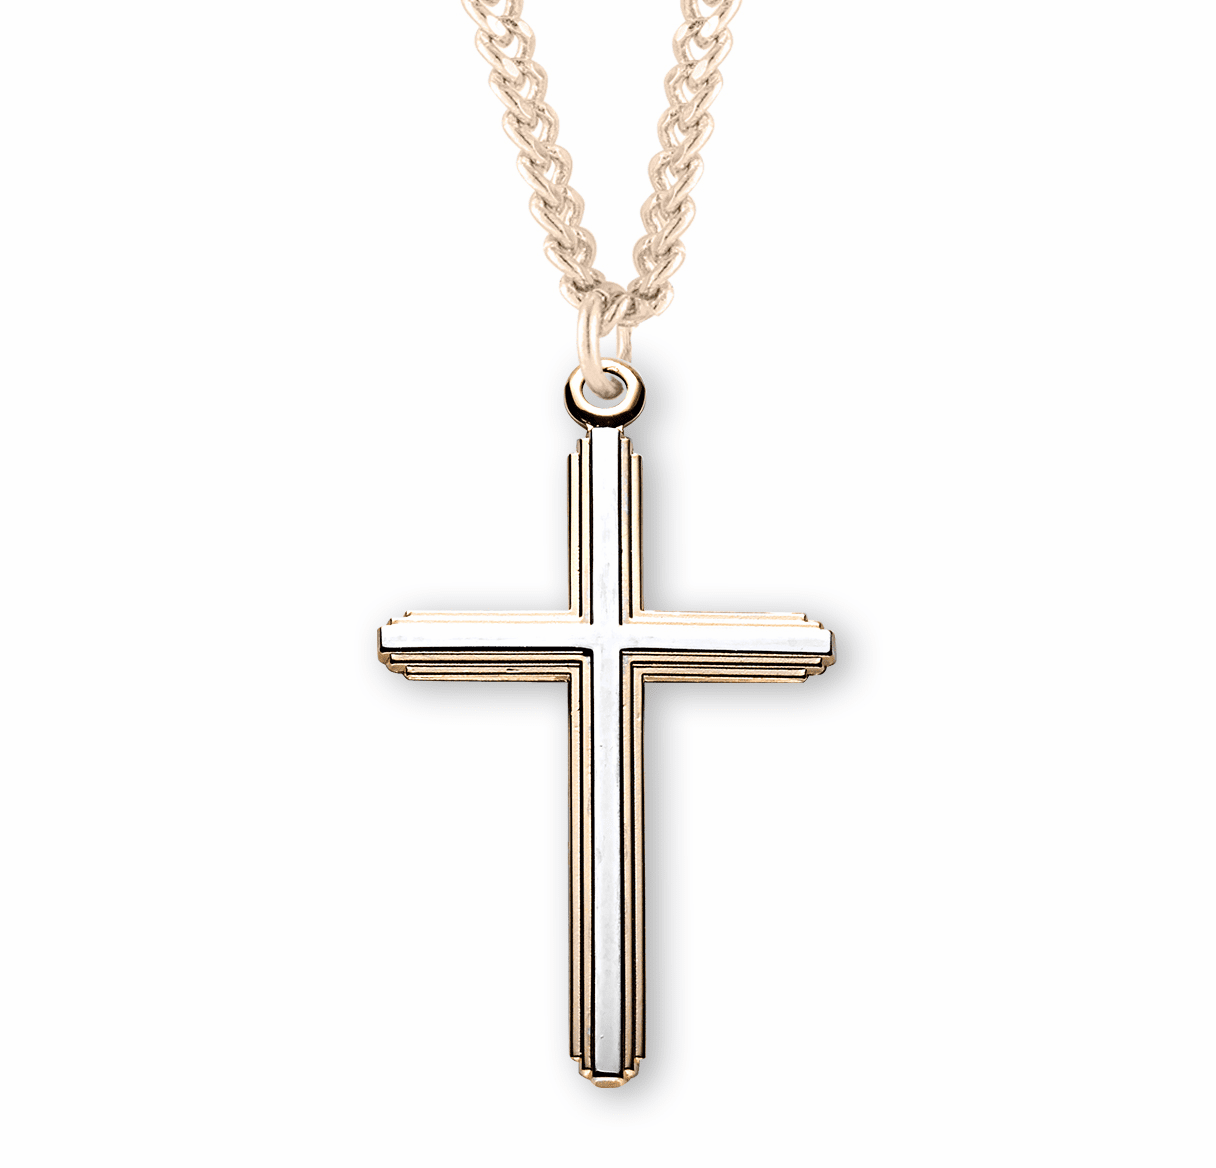 HMH Religious Gold over Sterling Silver Tu-Tone Inlayed Cross Necklace